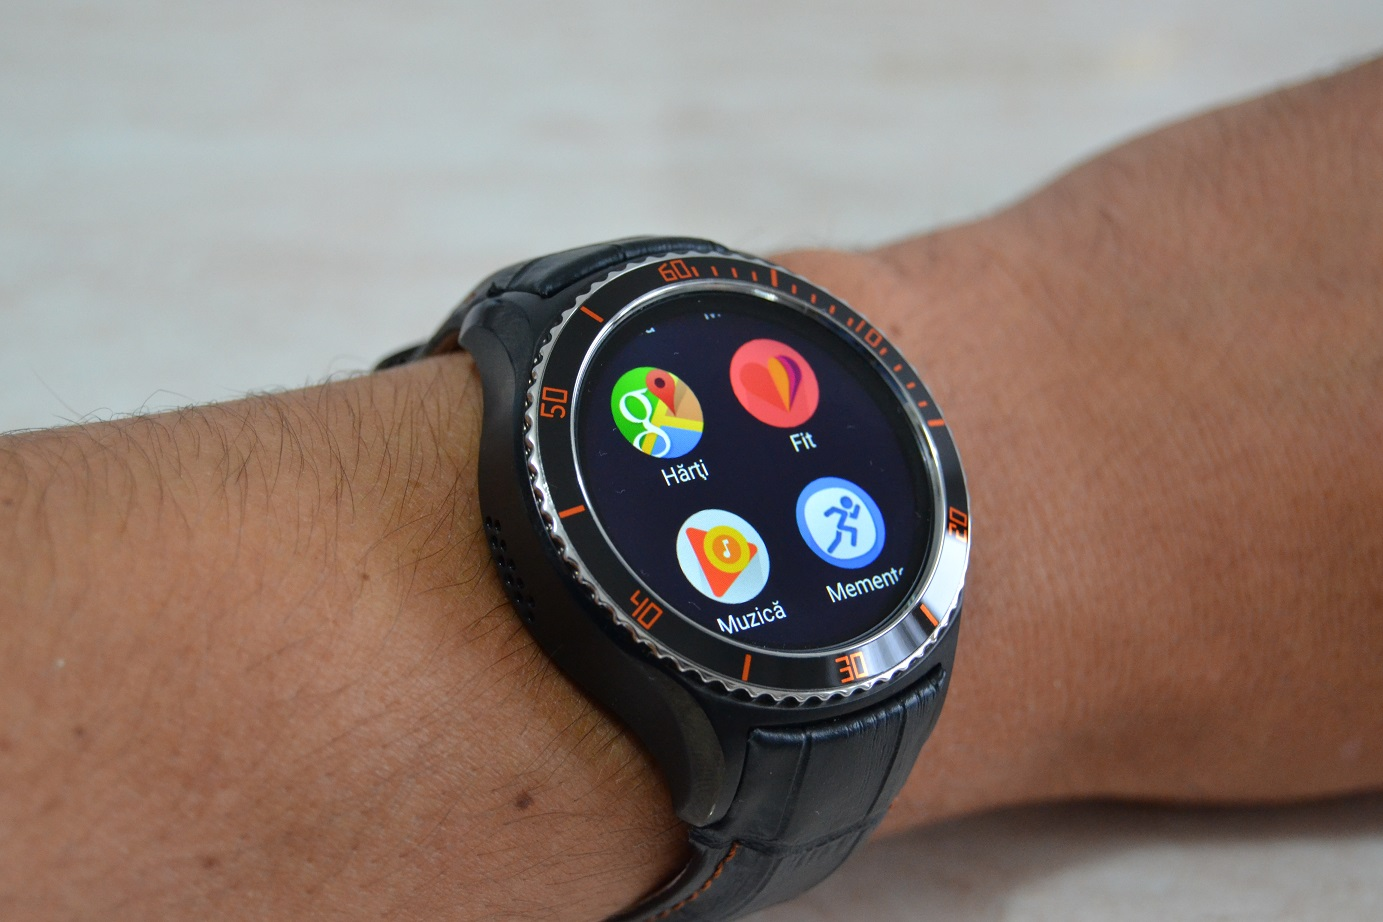 Unboxing si primele pareri, IQI I2 smartwatch cu Android, 3G si WiFi